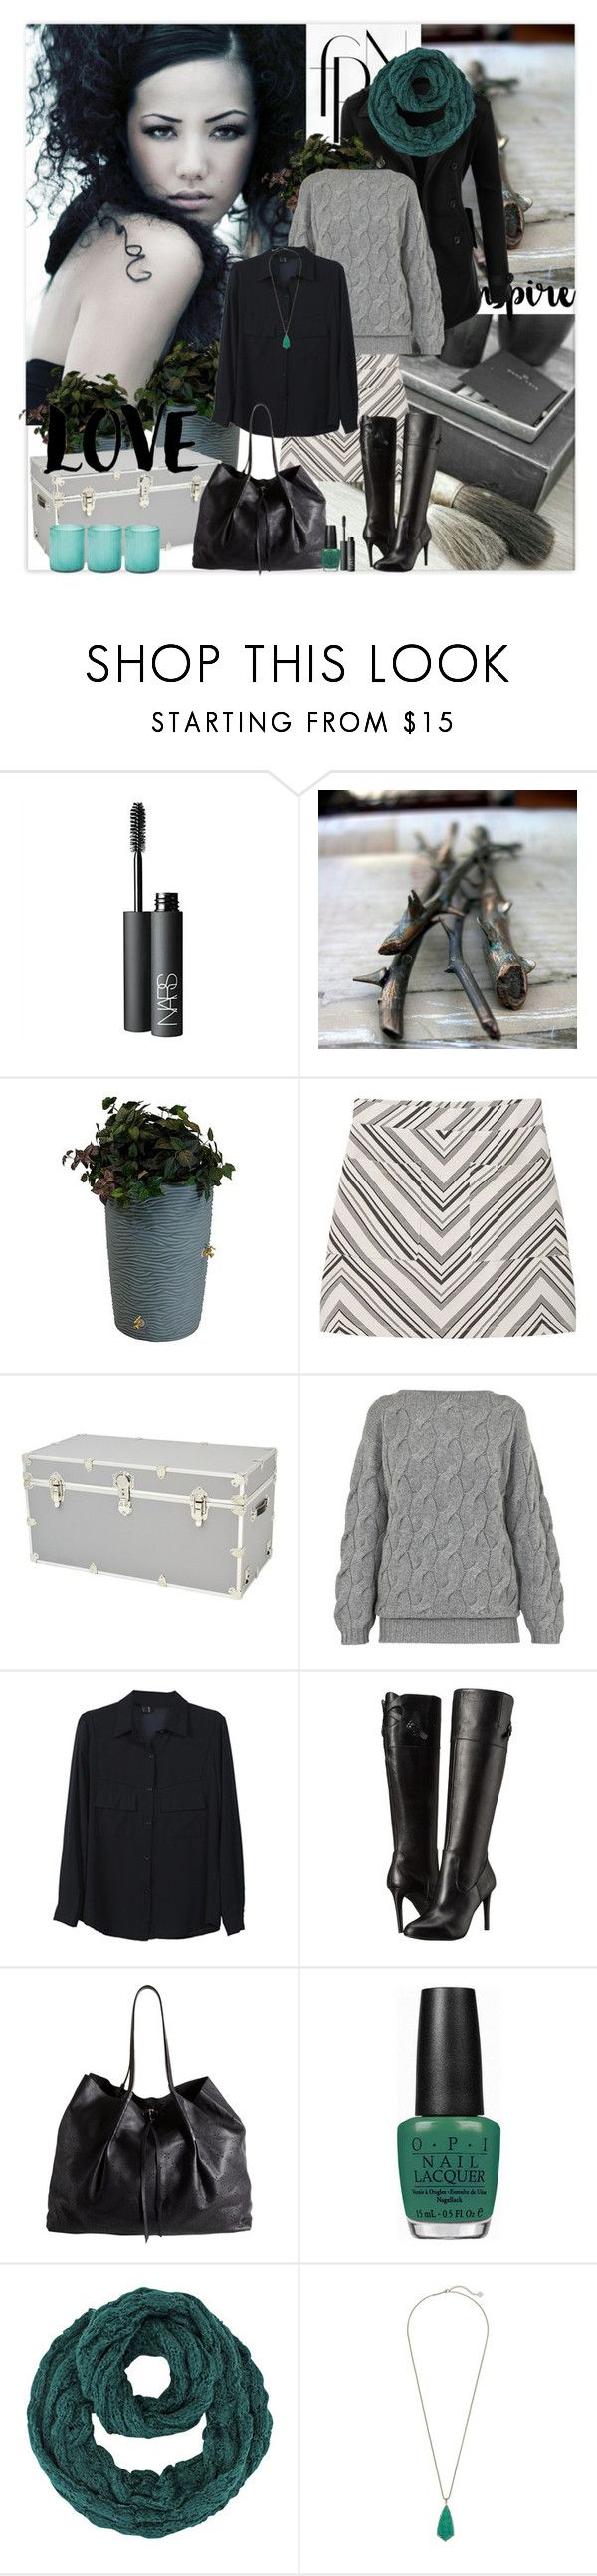 """M comme Mode de vie !!! 12"" by vicky-soleil ❤ liked on Polyvore featuring NARS Cosmetics, LE3NO, Good Ideas, MANGO, AV London, Lauren Ralph Lauren, Nina Ricci, Kendra Scott and Jamie Young"